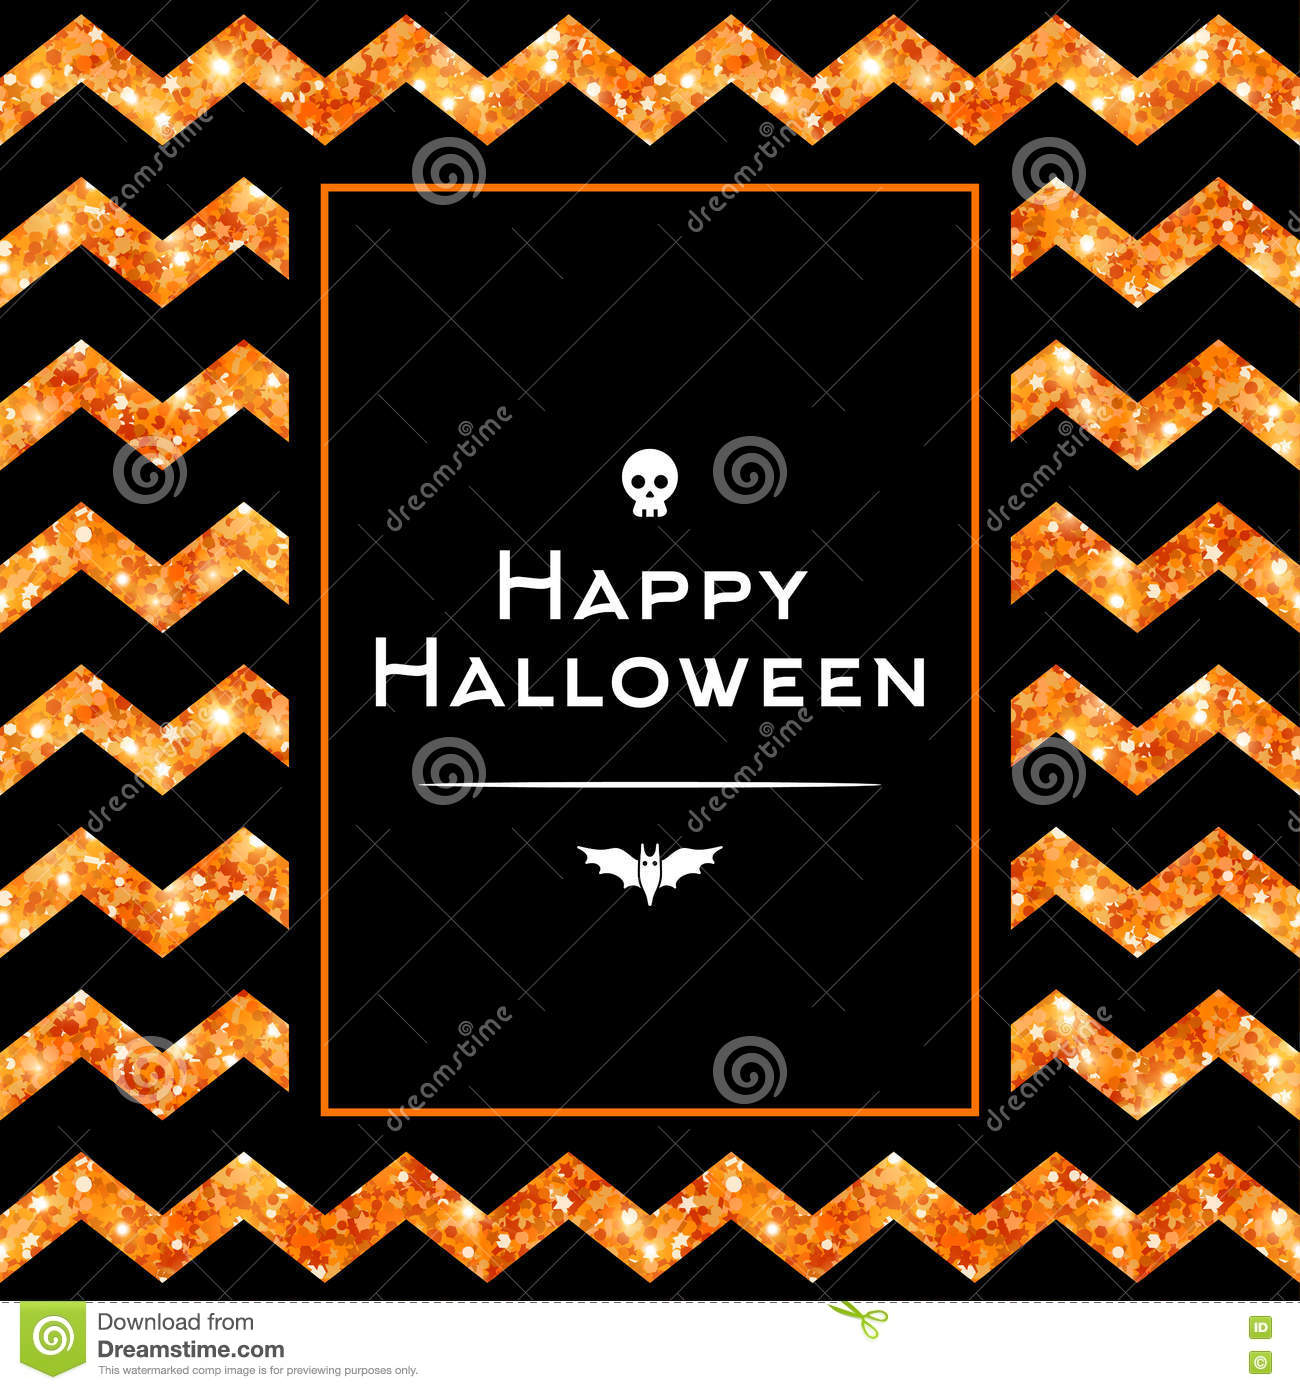 Happy halloween greeting card with square frame stock vector happy halloween greeting card with square frame kristyandbryce Images